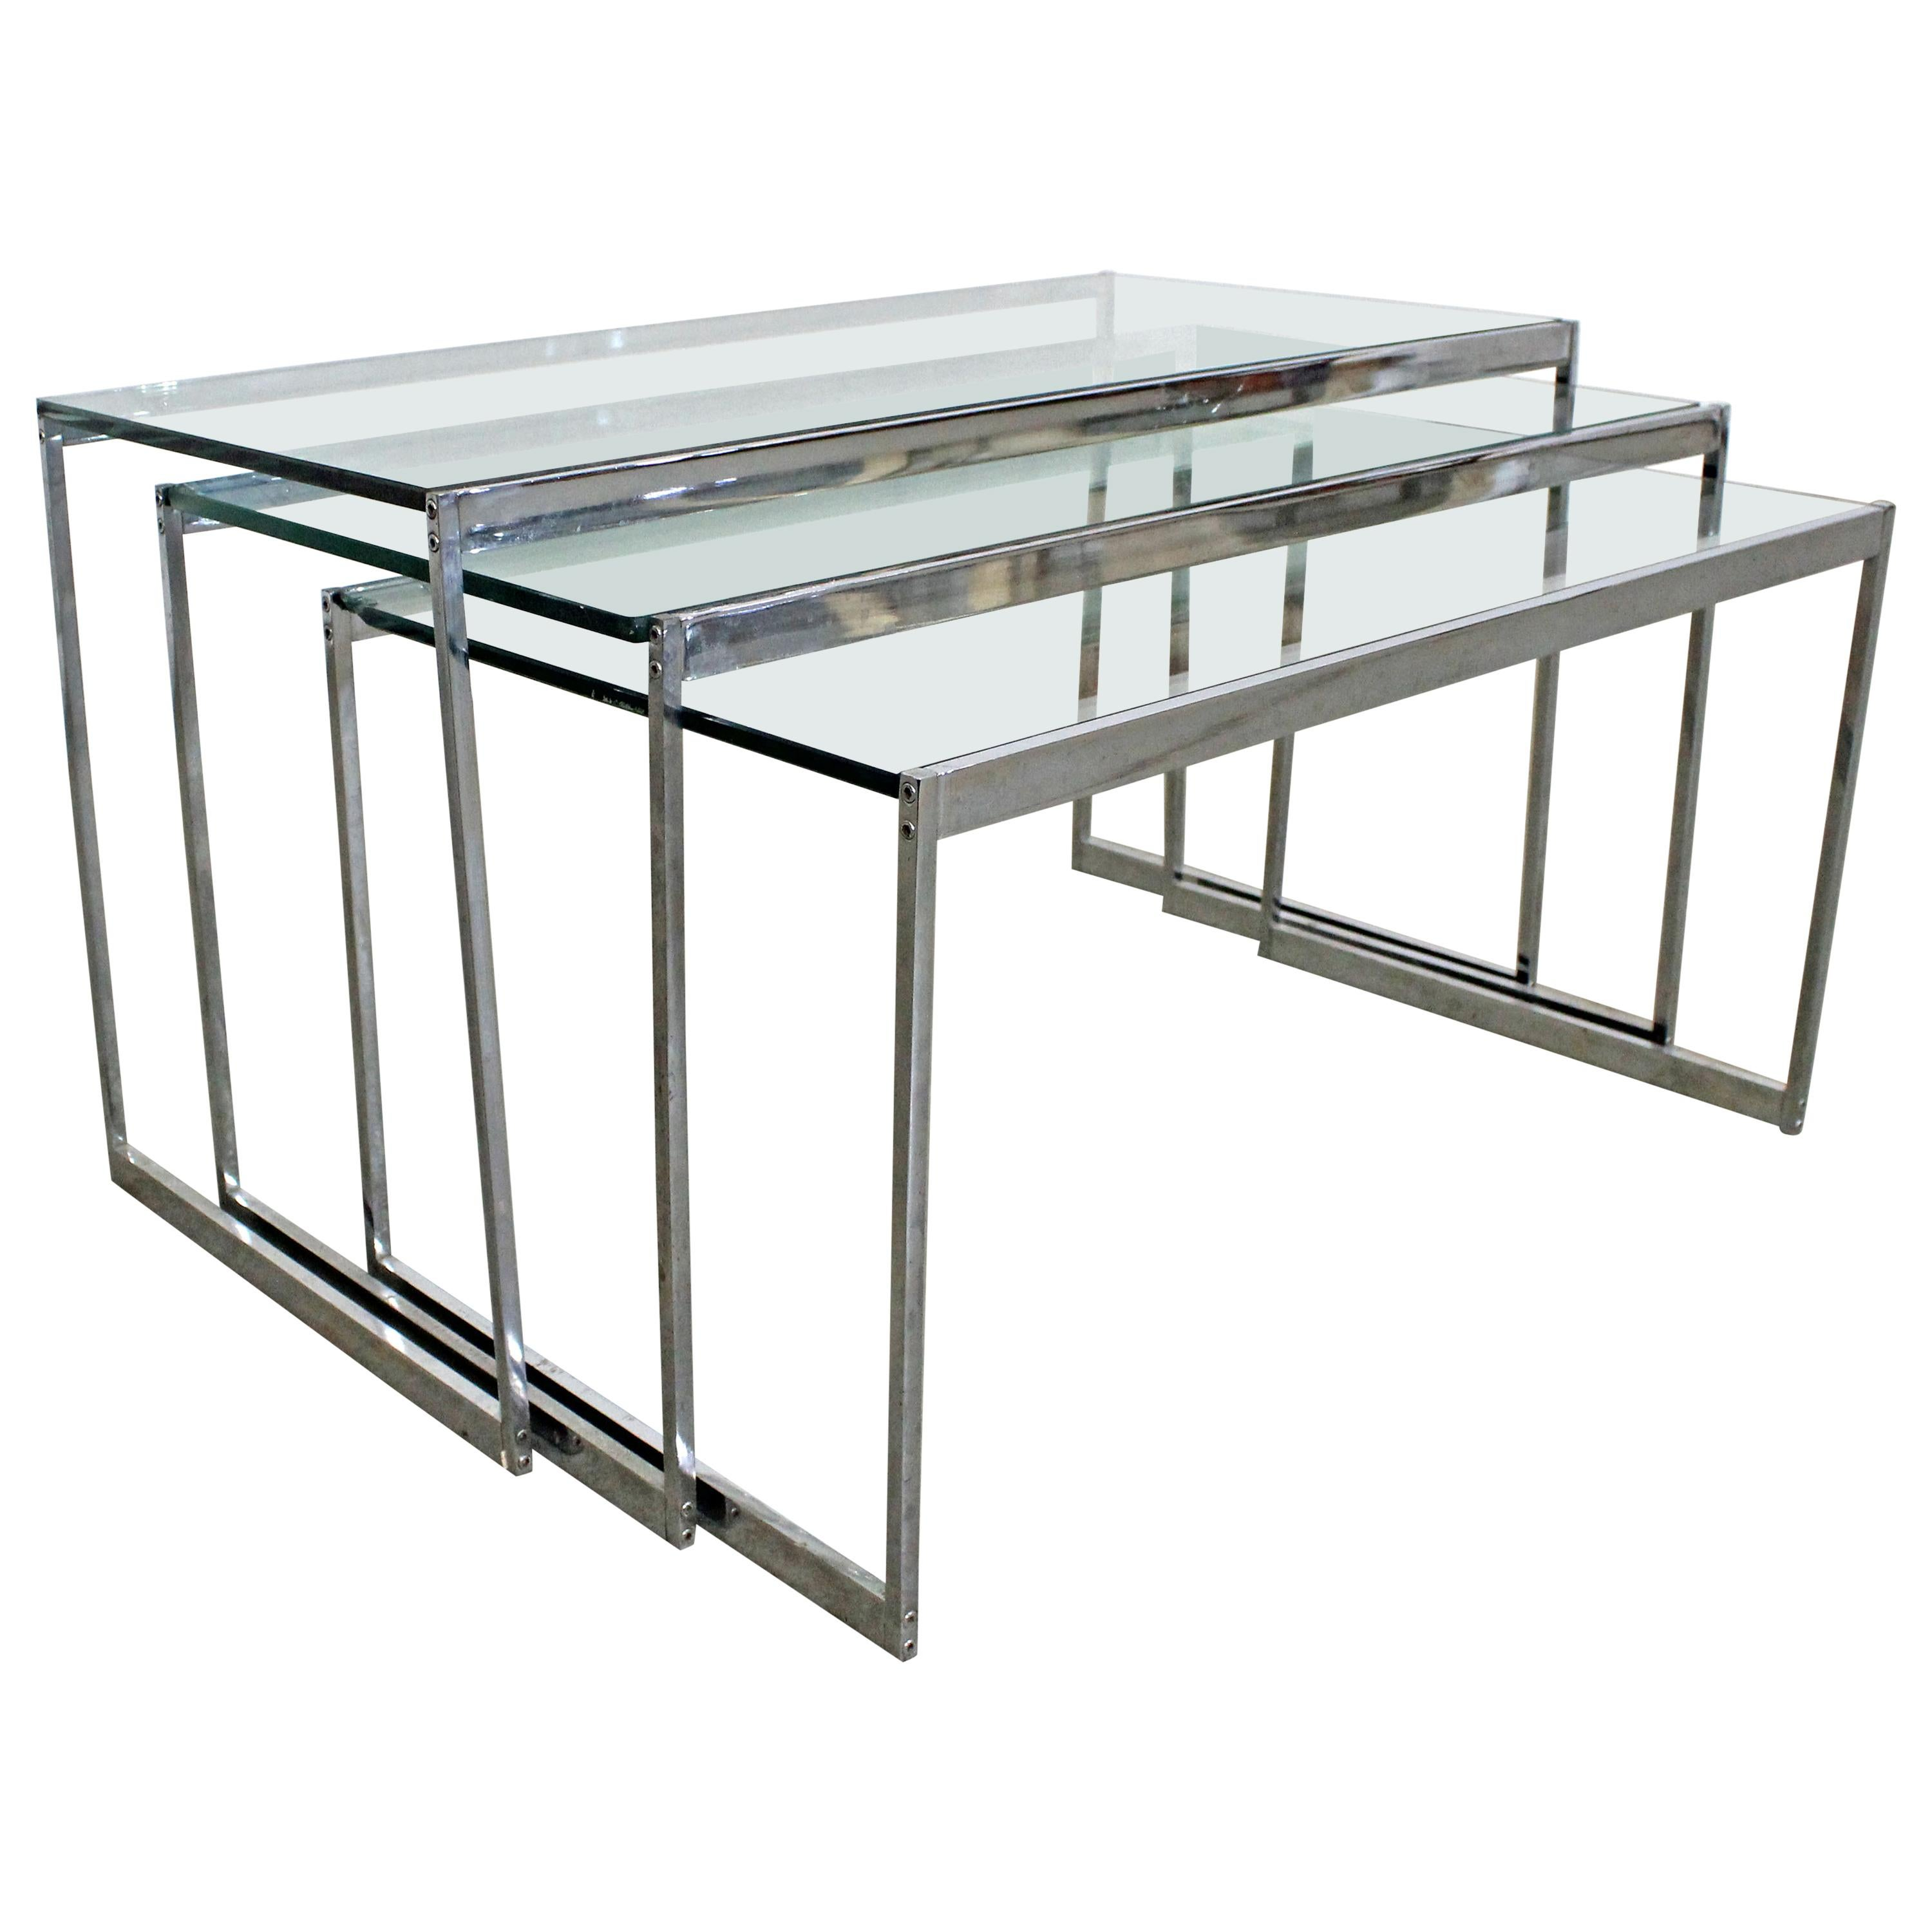 Set of 3 Mid-Century Modern Chrome and Glass Top Nesting End Tables